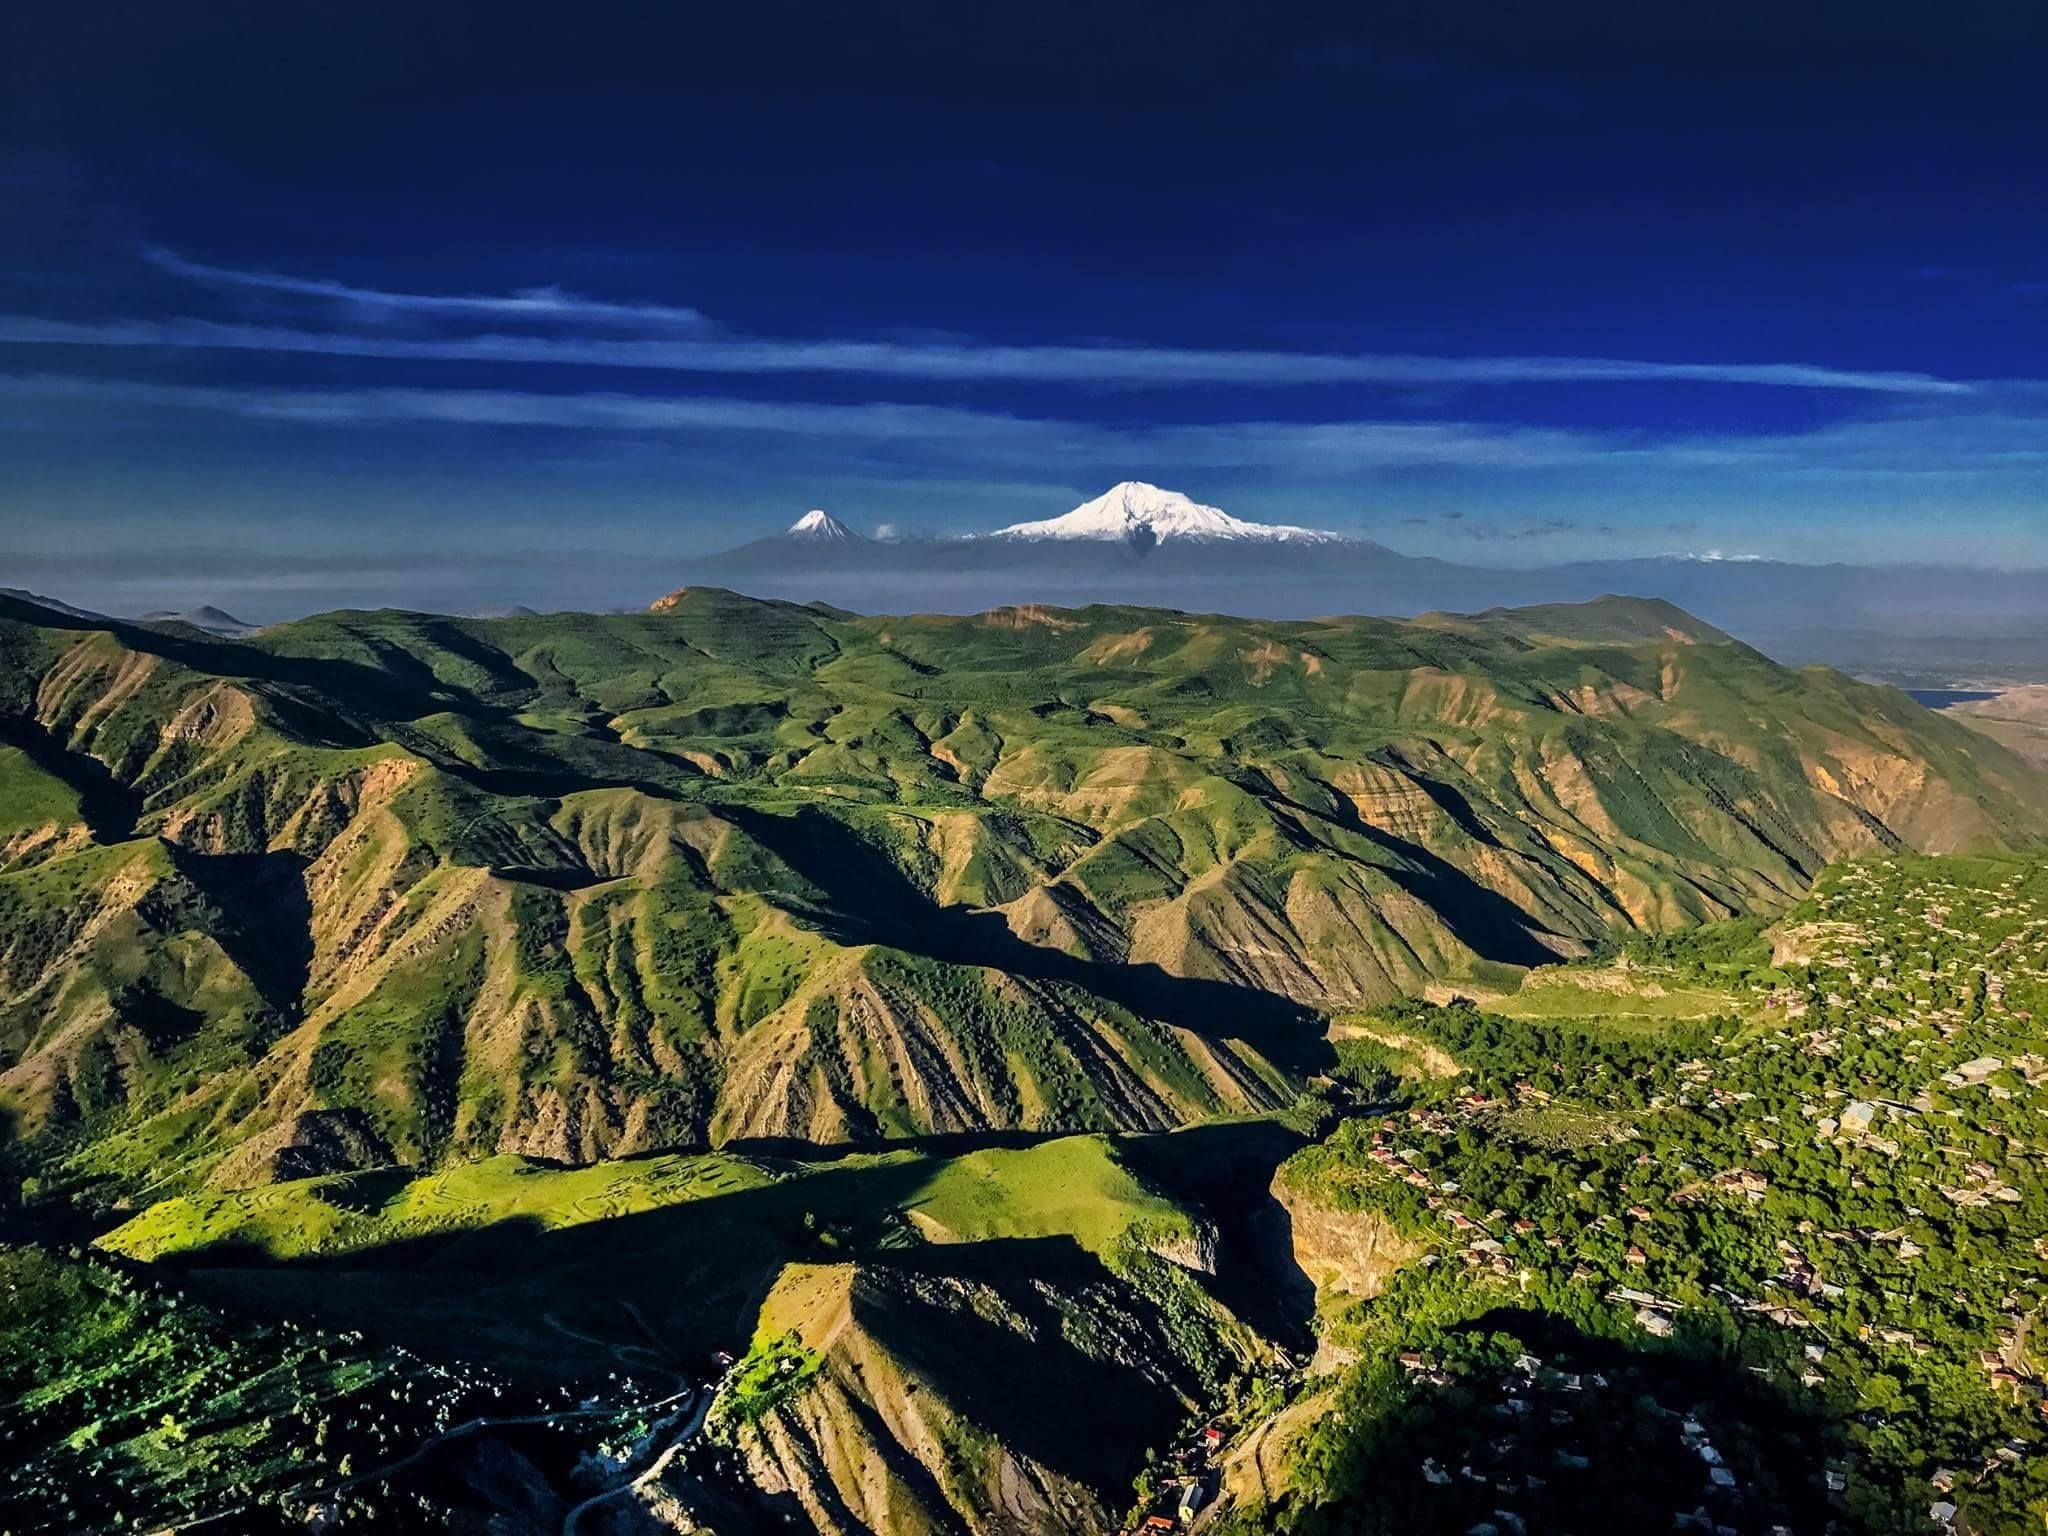 The Armenian highlands are a mountainous region in the north of the Near East. Ancient State in the Armenian Highlands